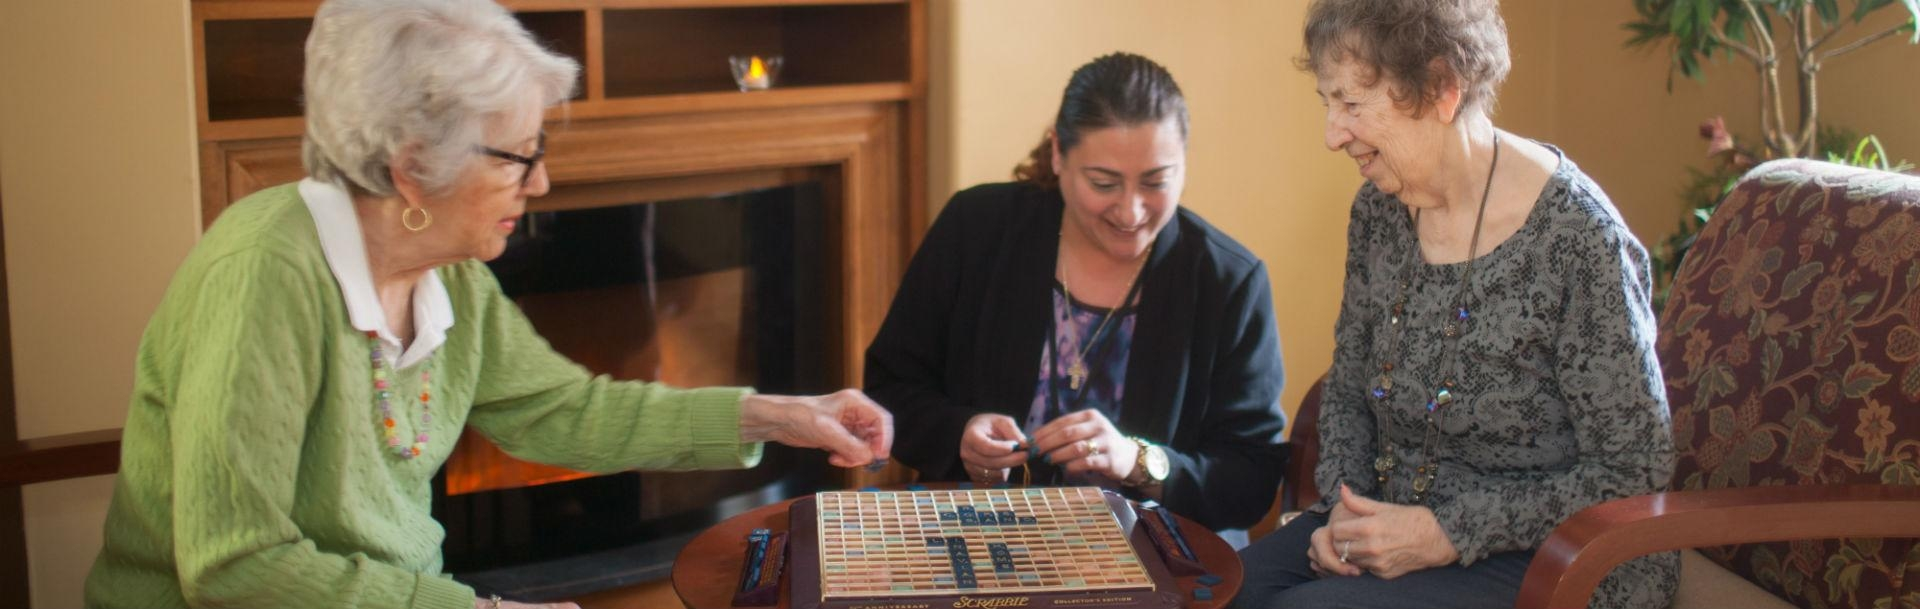 Our long term residents playing scrabble with staff